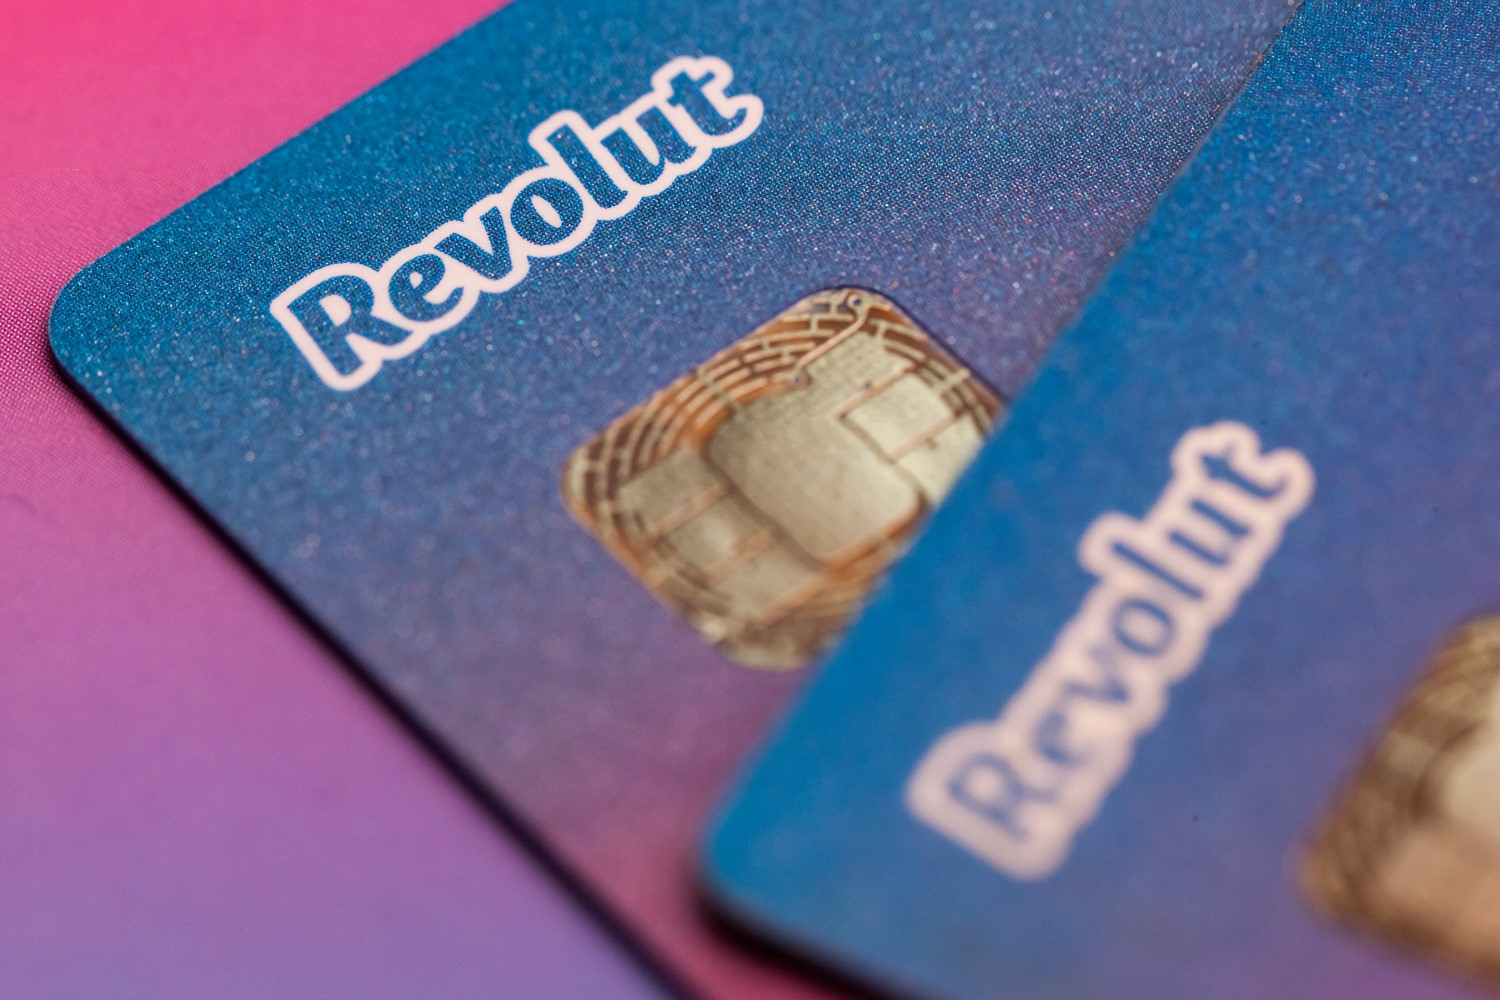 Revolut Adds Dogecoin to Crypto Offering